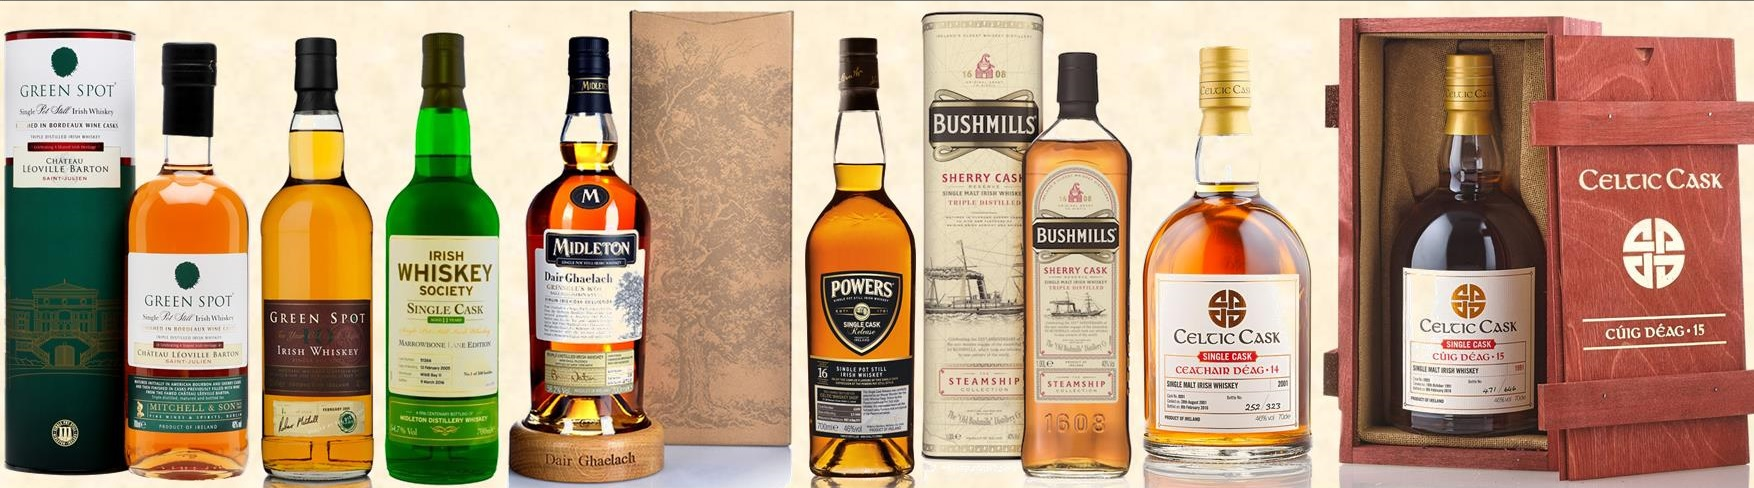 Paddys Day Irish Whiskey Tasting Lineup